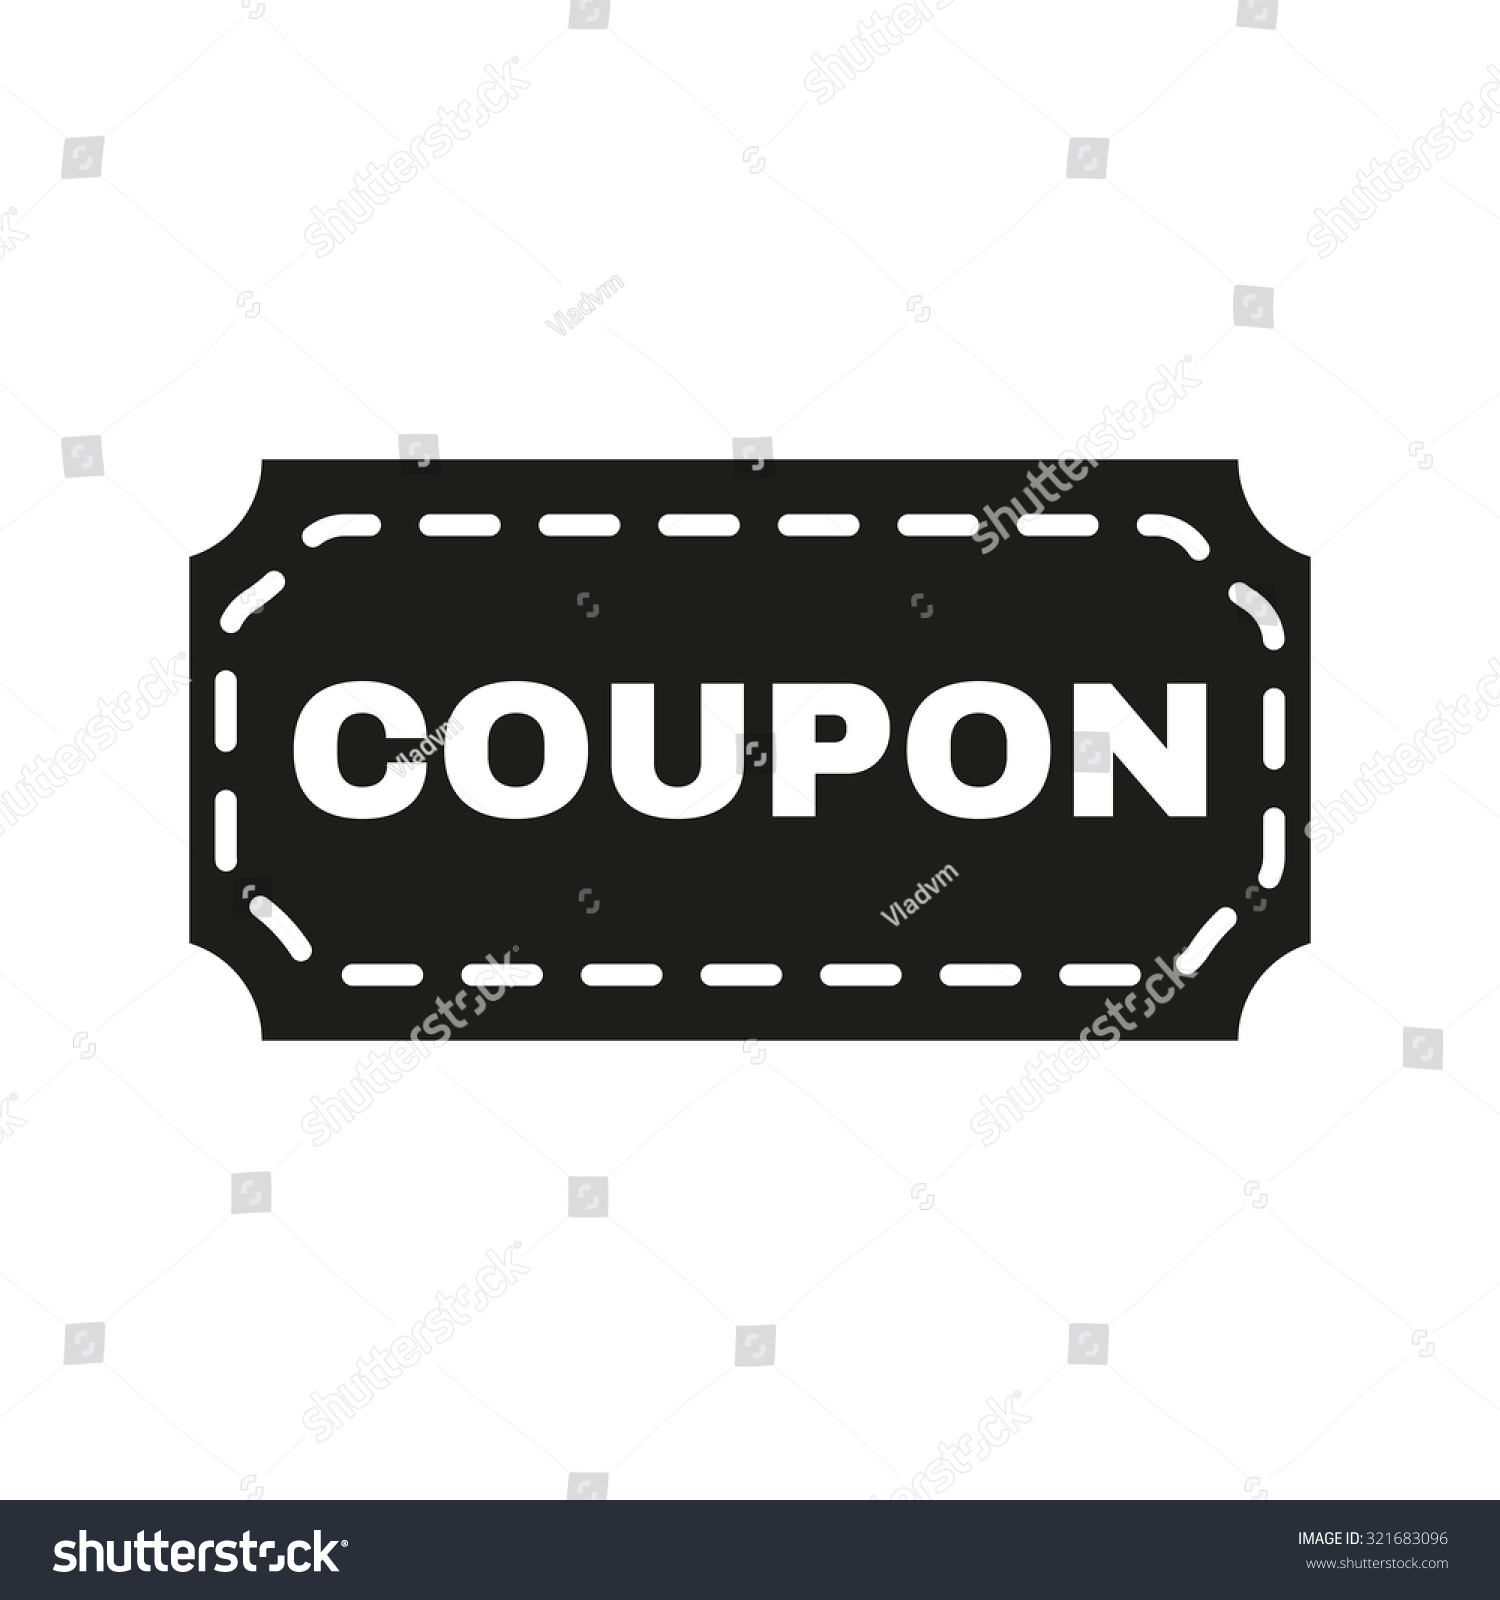 Shutterstock discount coupon